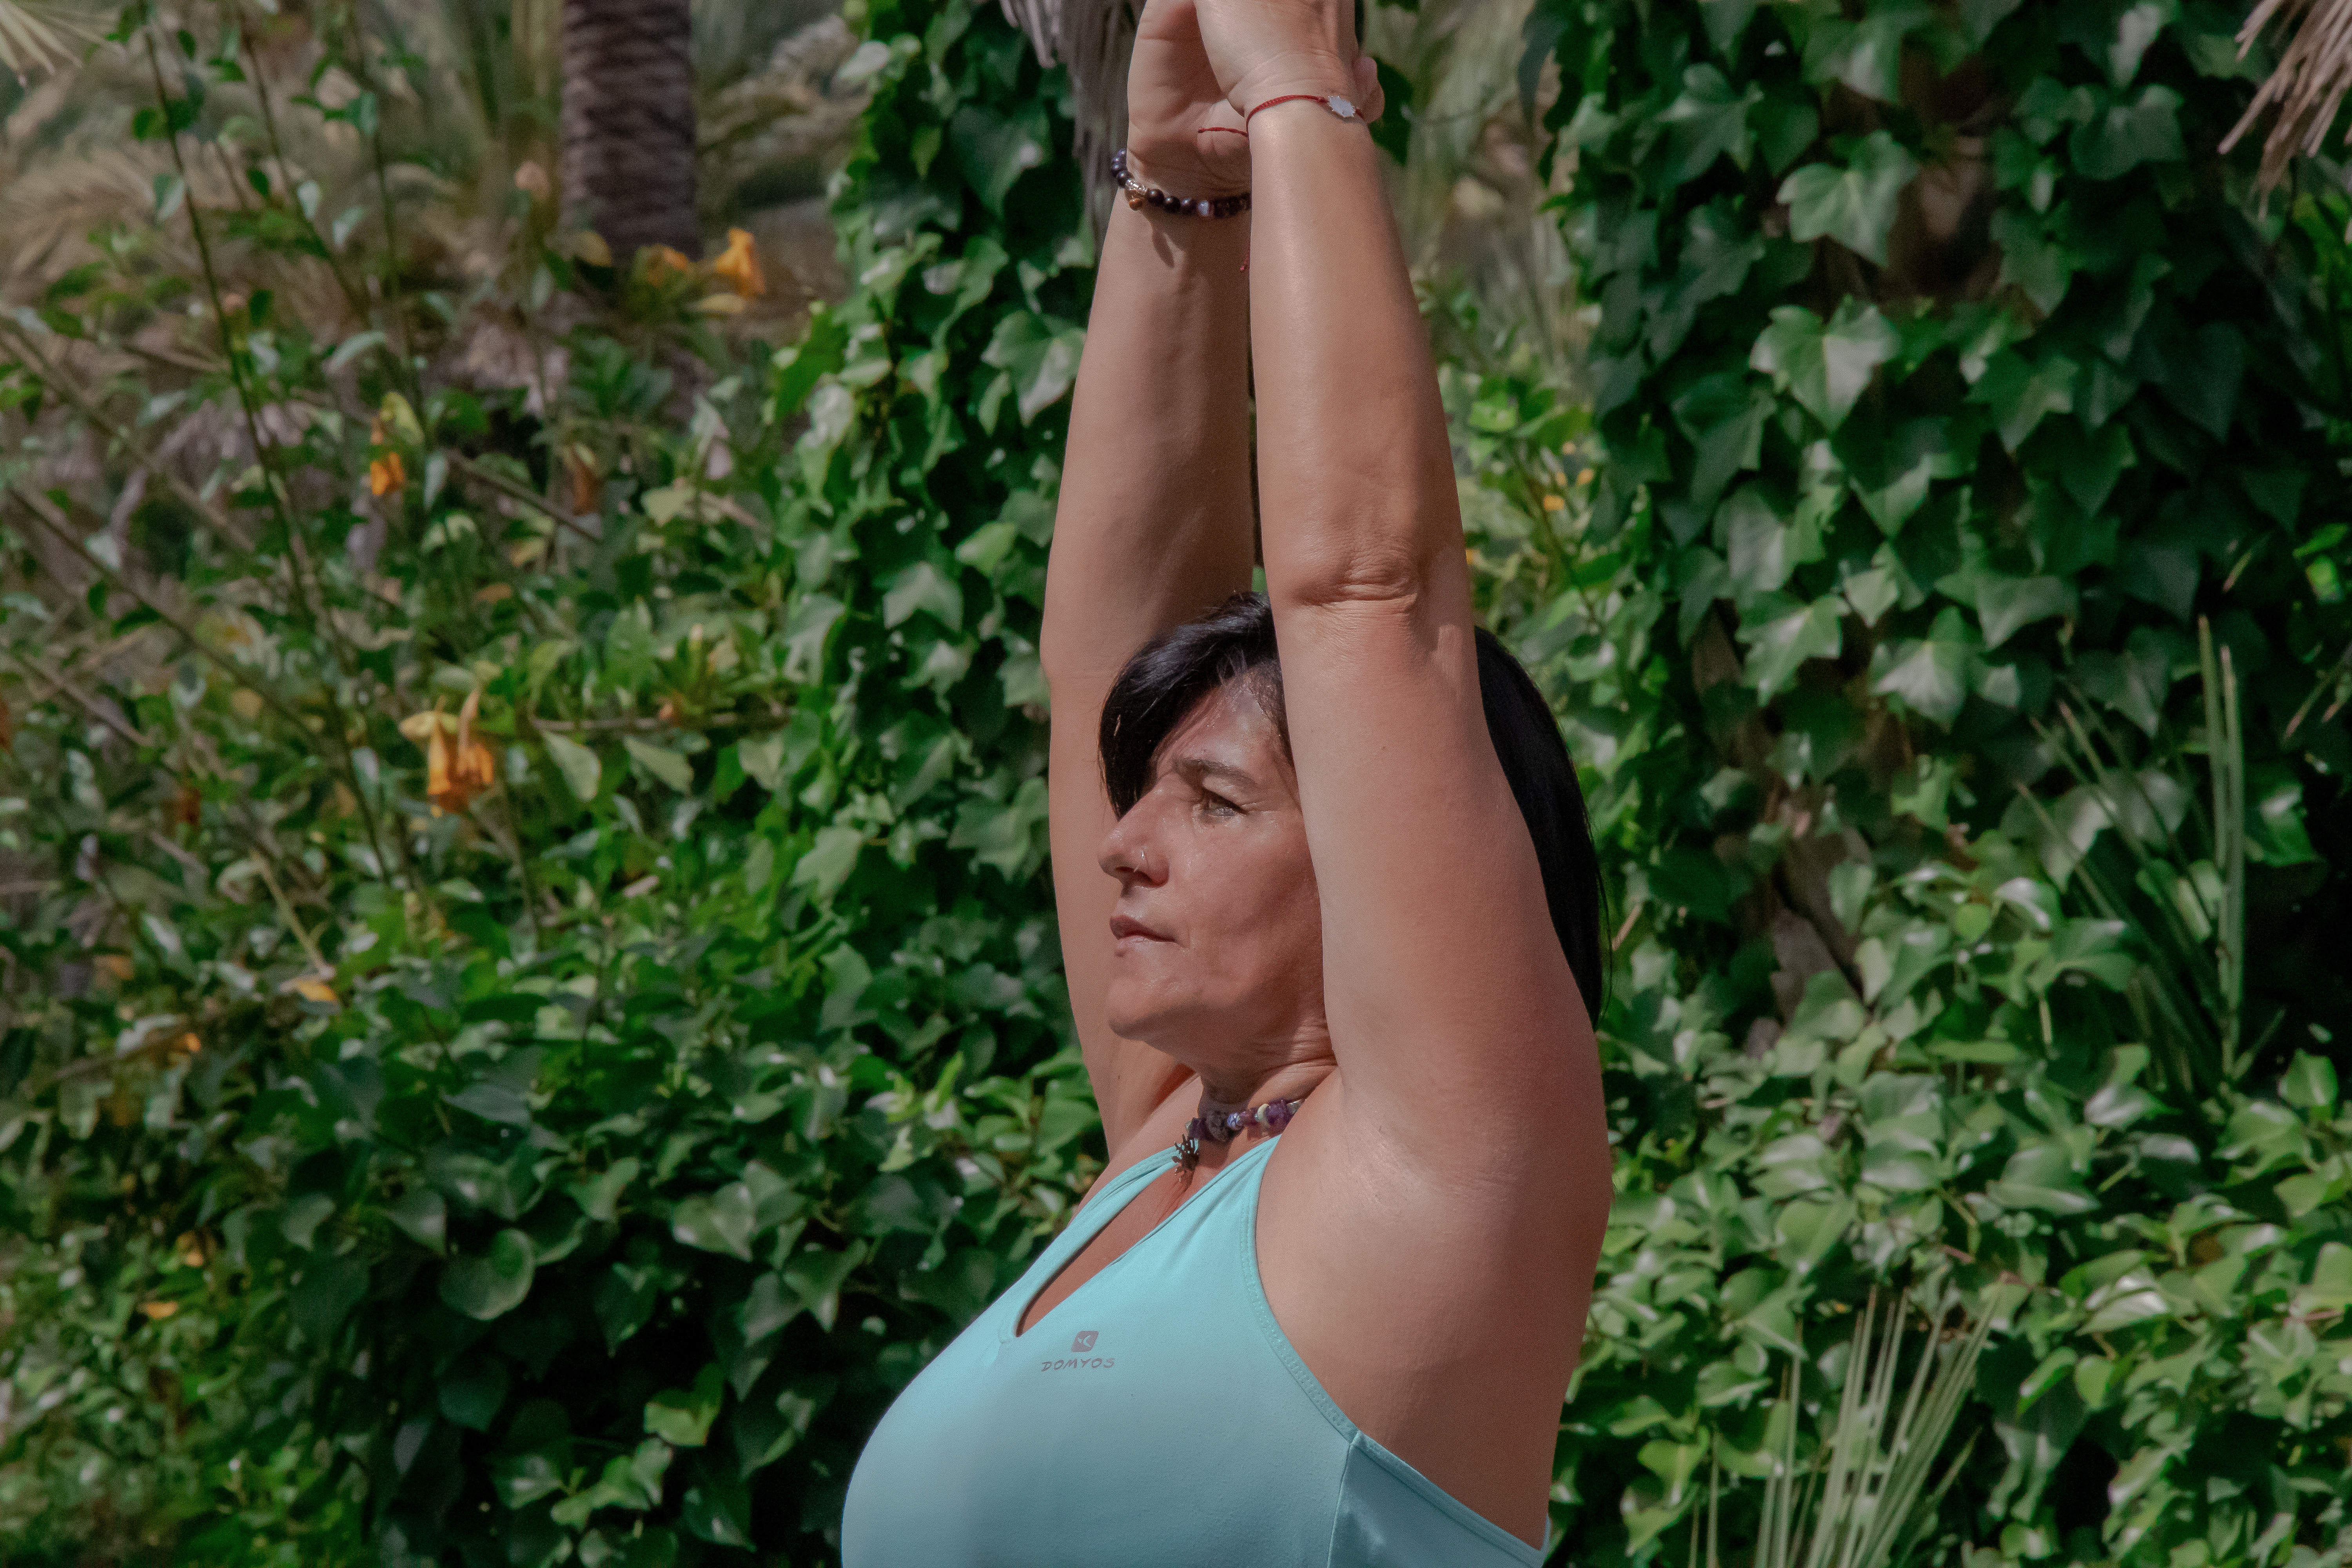 Graciela-yoga-17